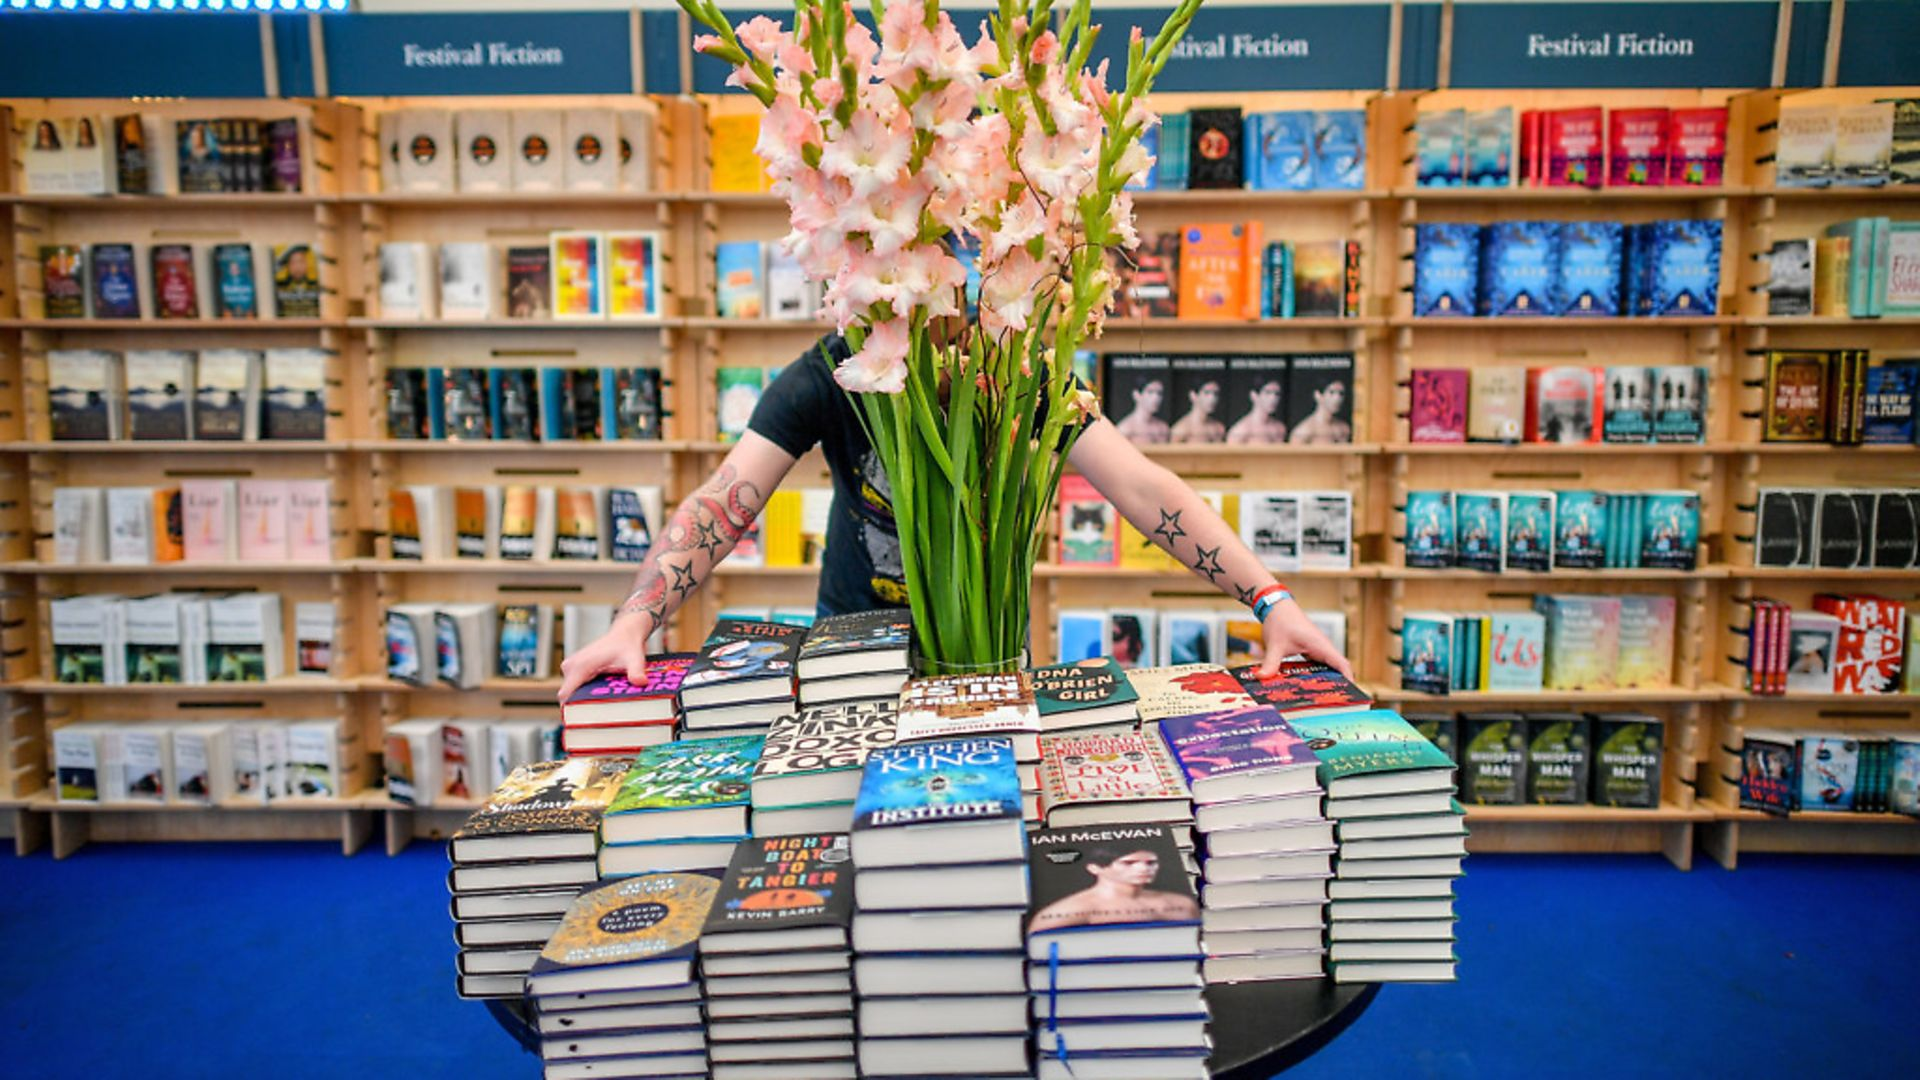 A worker organises and straightens books in a bookstore. Photograph: Ben Birchall/PA. - Credit: PA Wire/PA Images